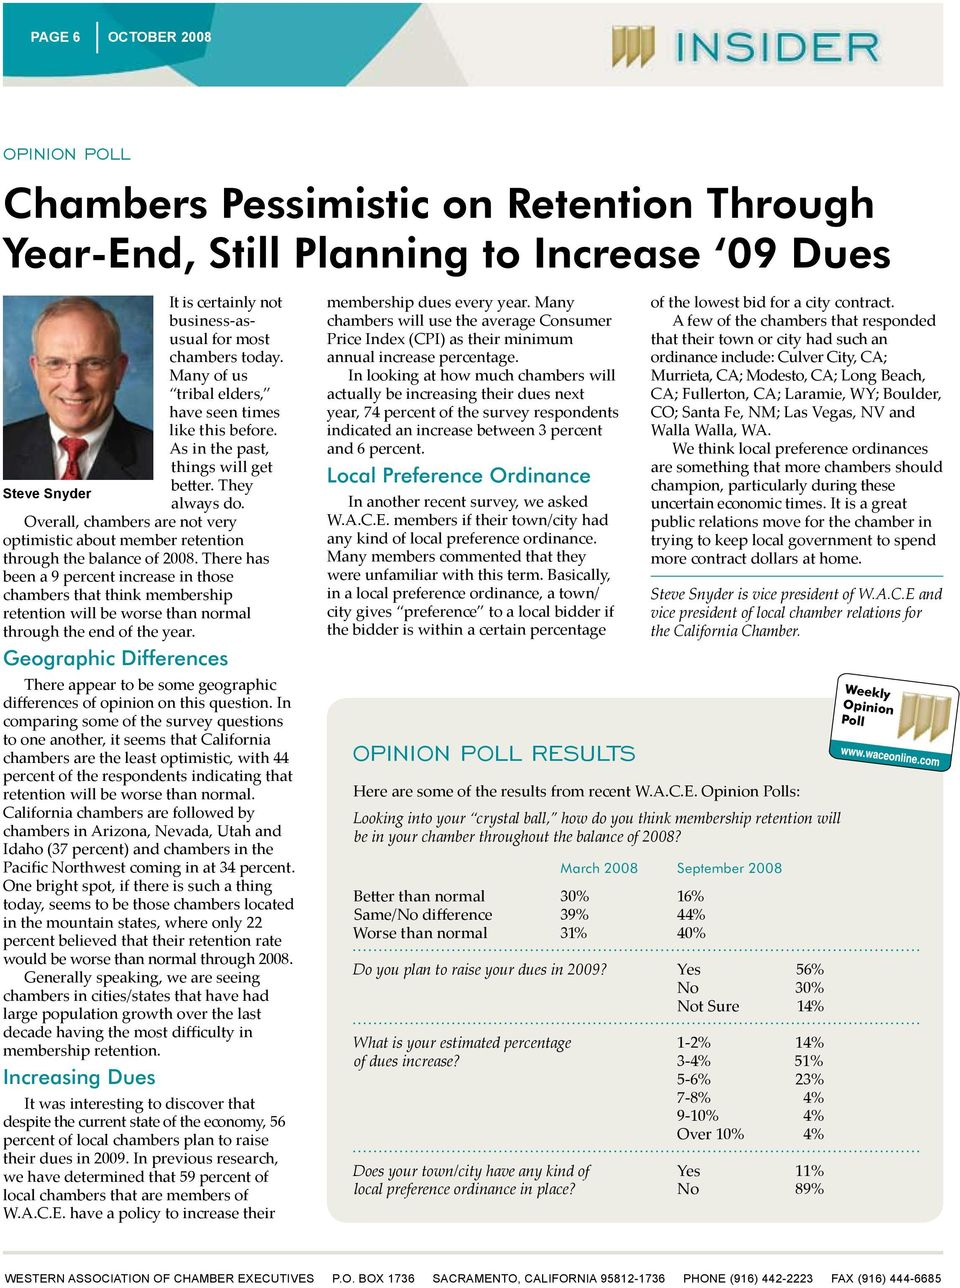 Overall, chambers are not very optimistic about member retention through the balance of 2008.